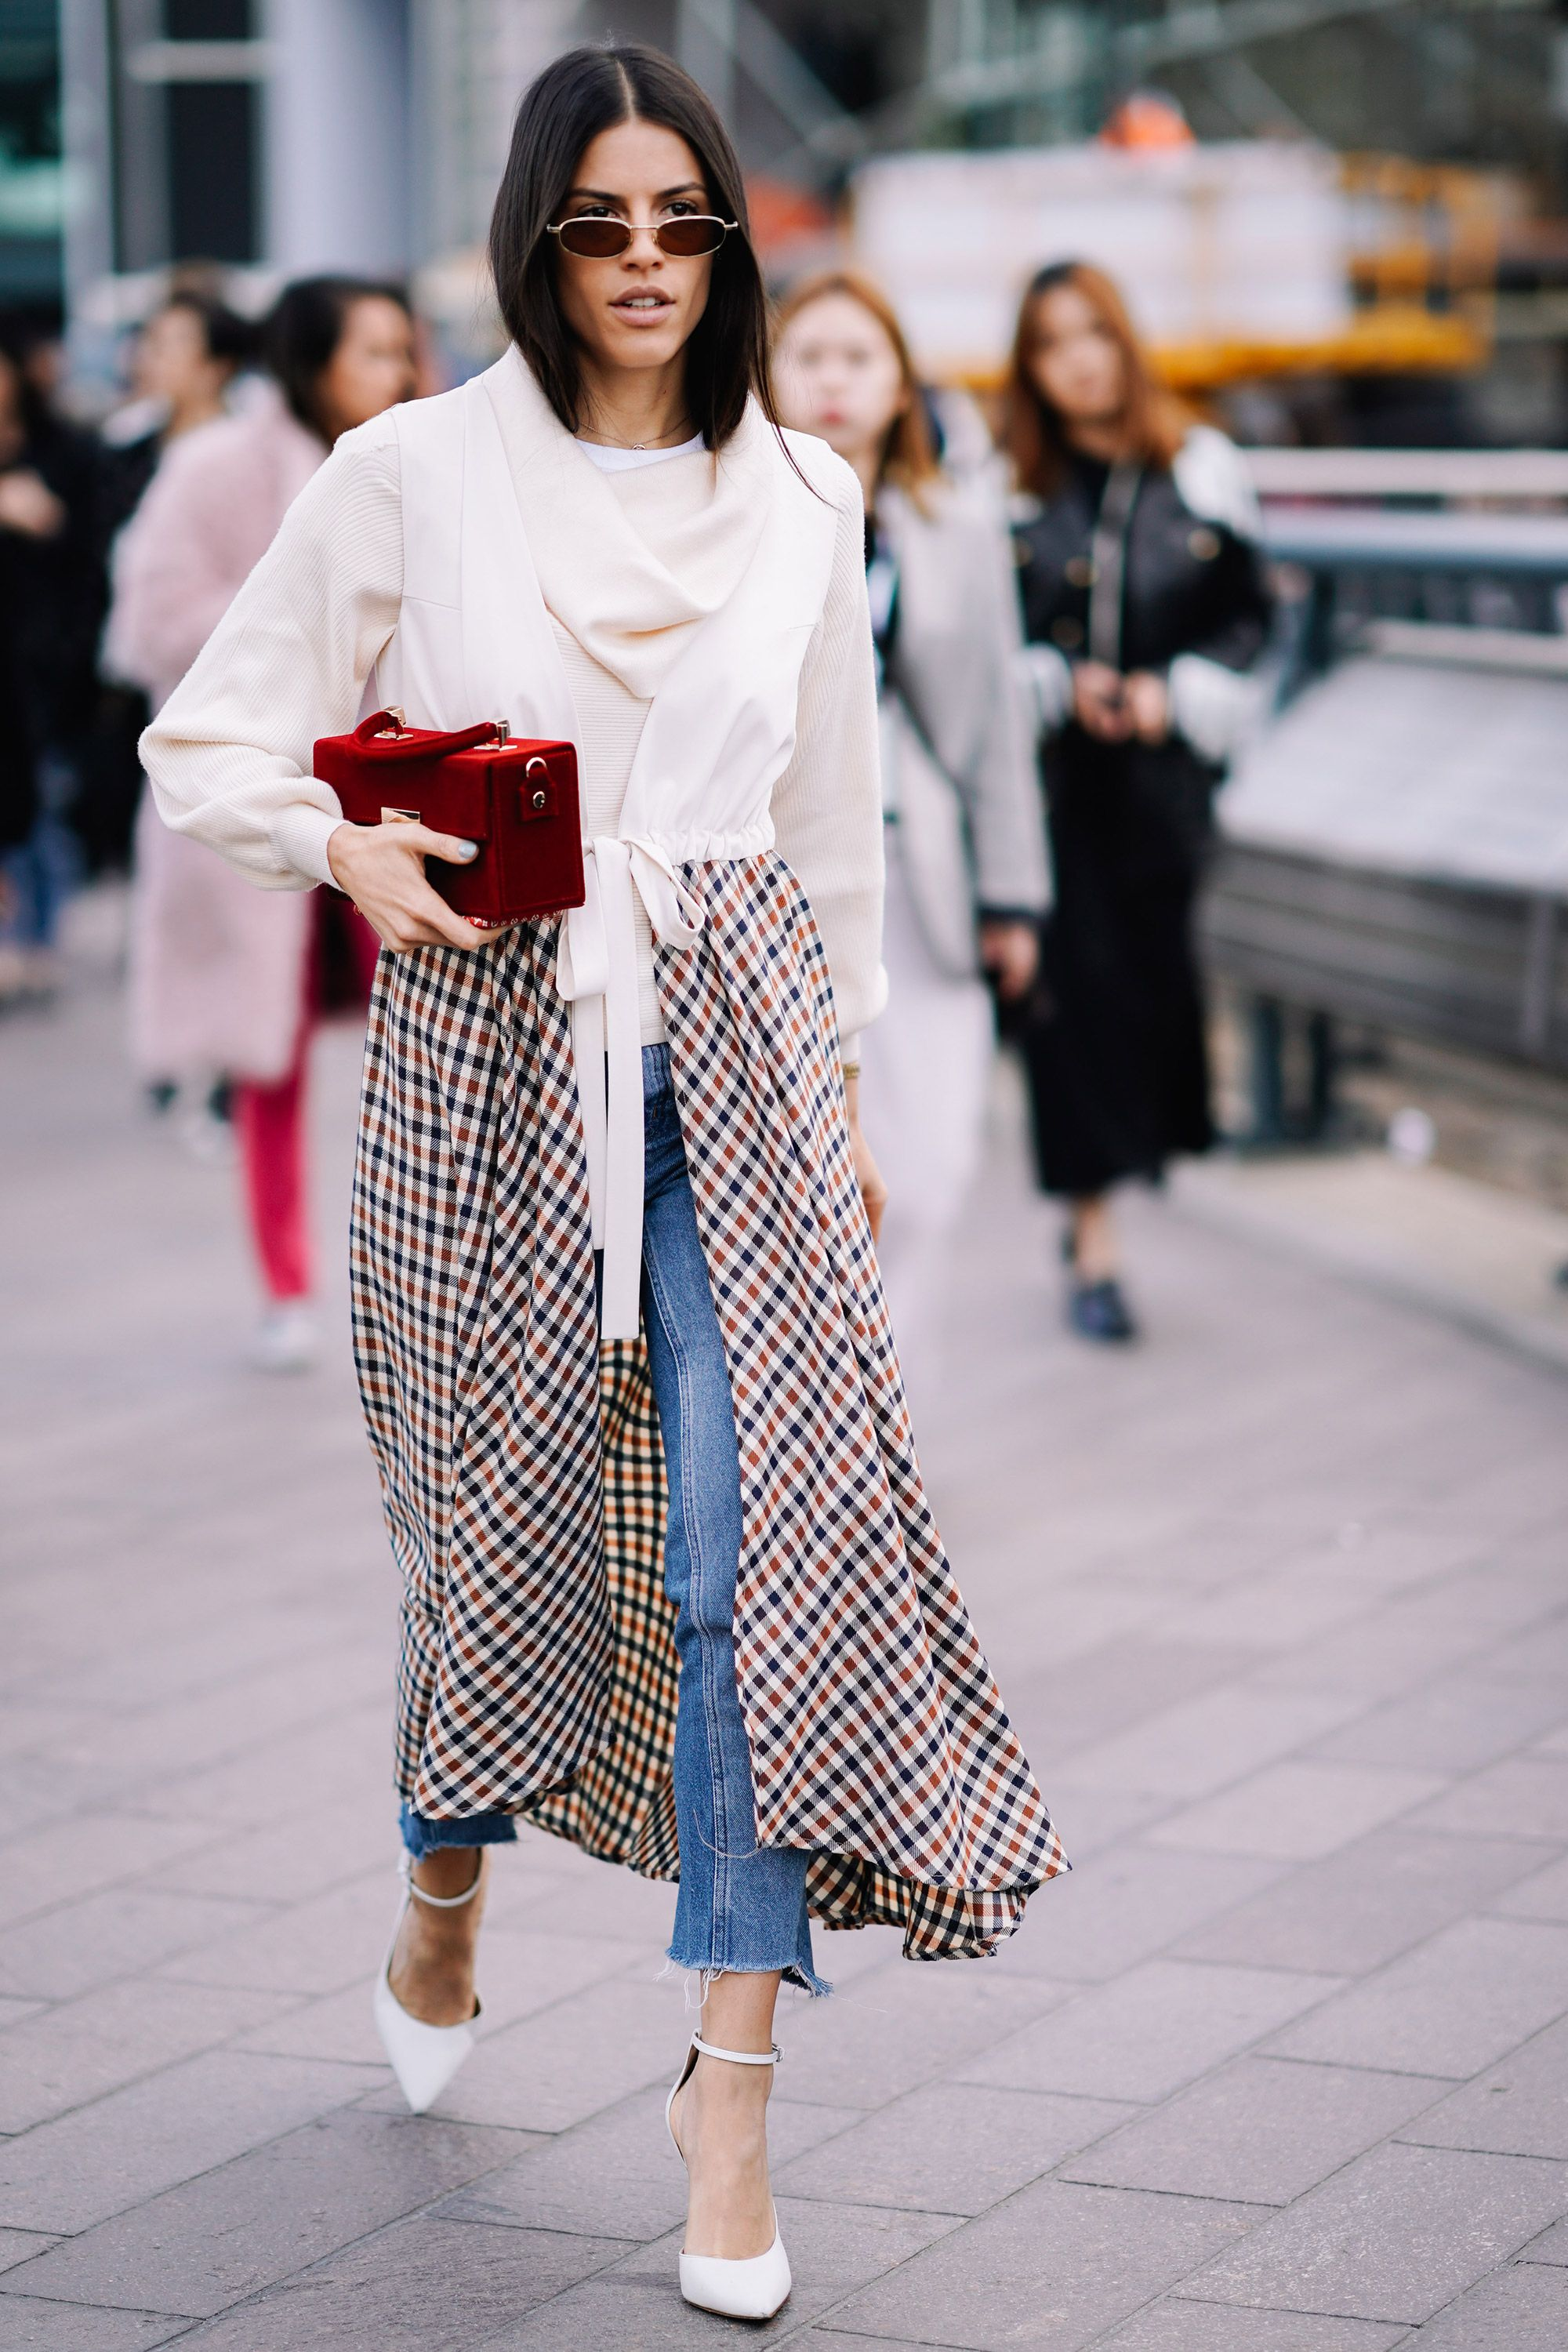 How to wear dresses over jeans \u2013 Styling advice for wearing